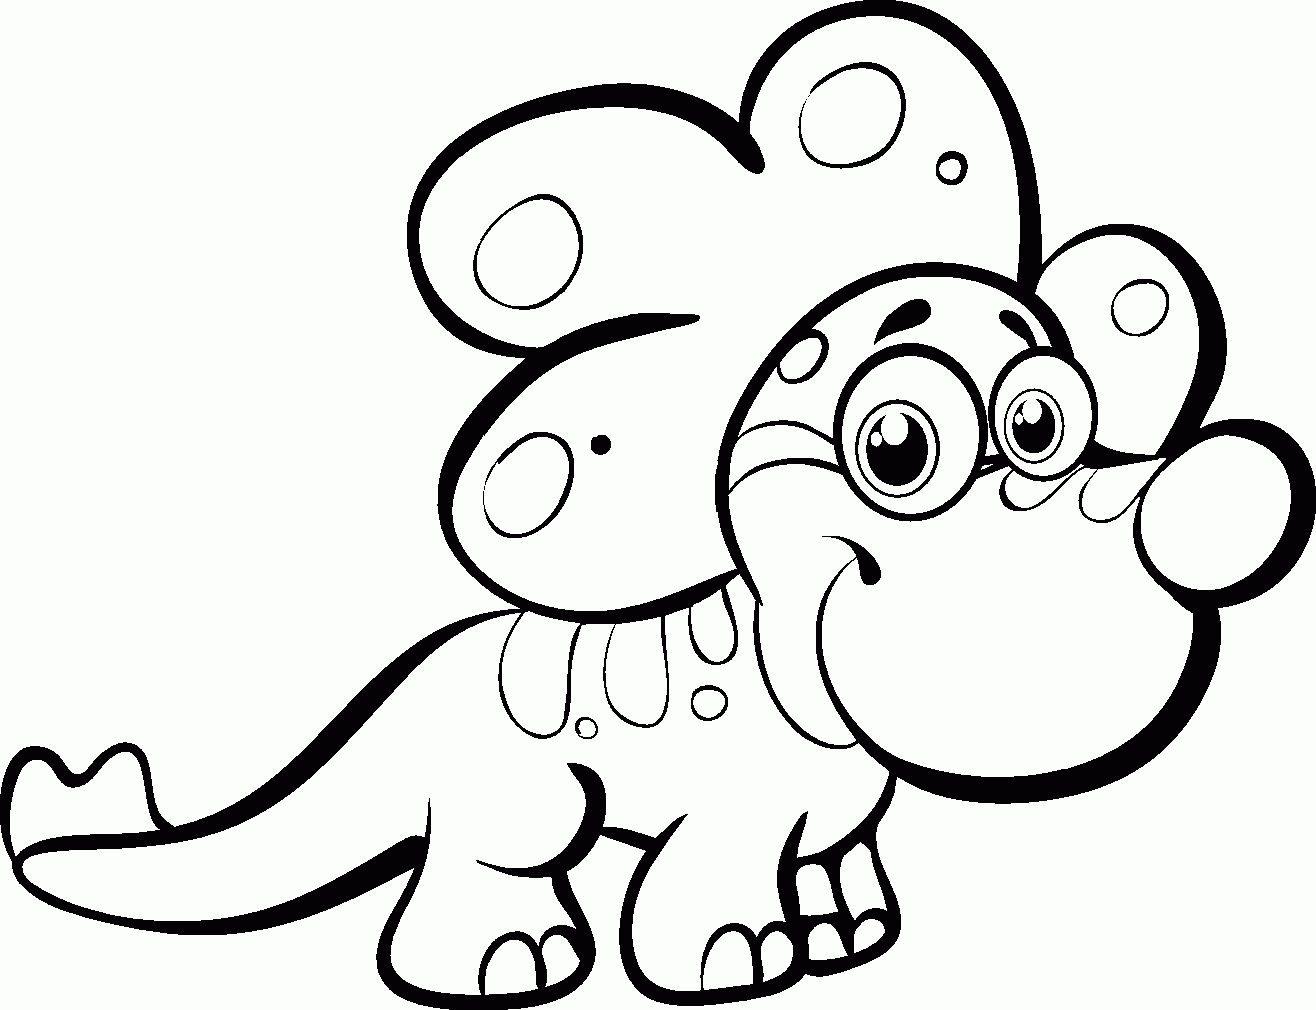 Line Art Baby : Baby dino drawing at getdrawings free for personal use